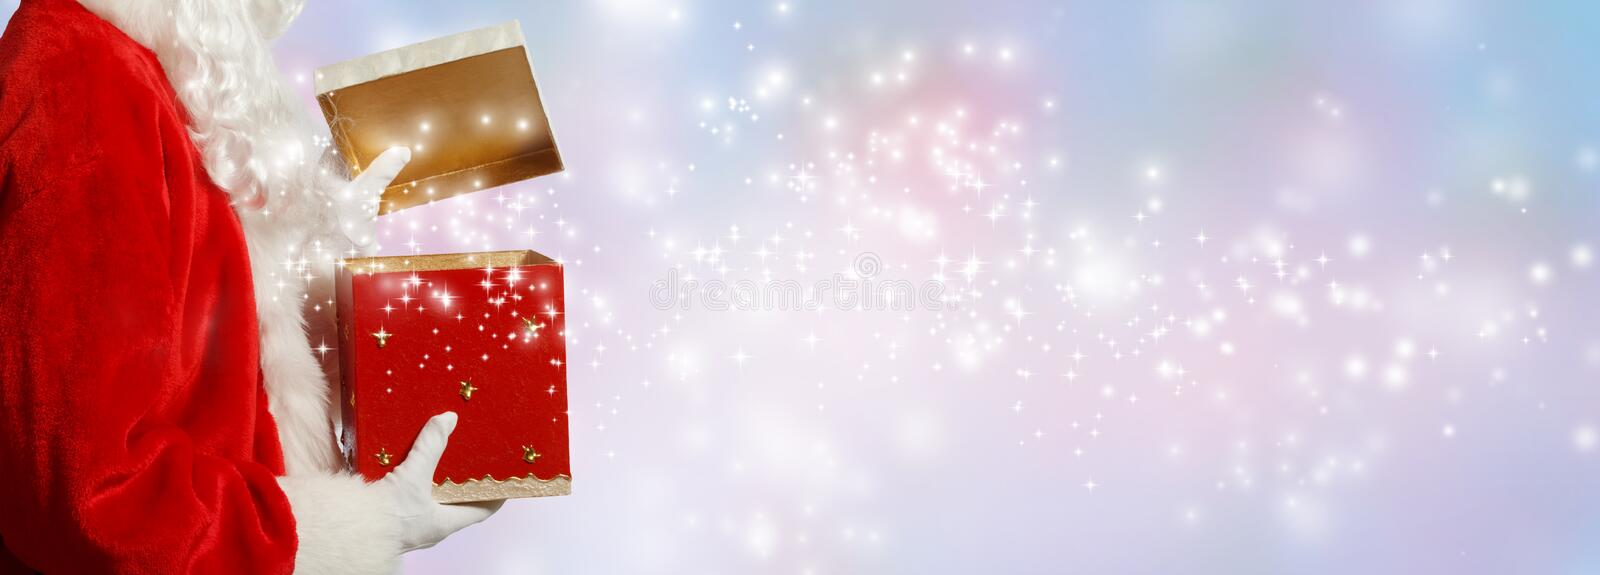 Santa opening a gift box royalty free stock images